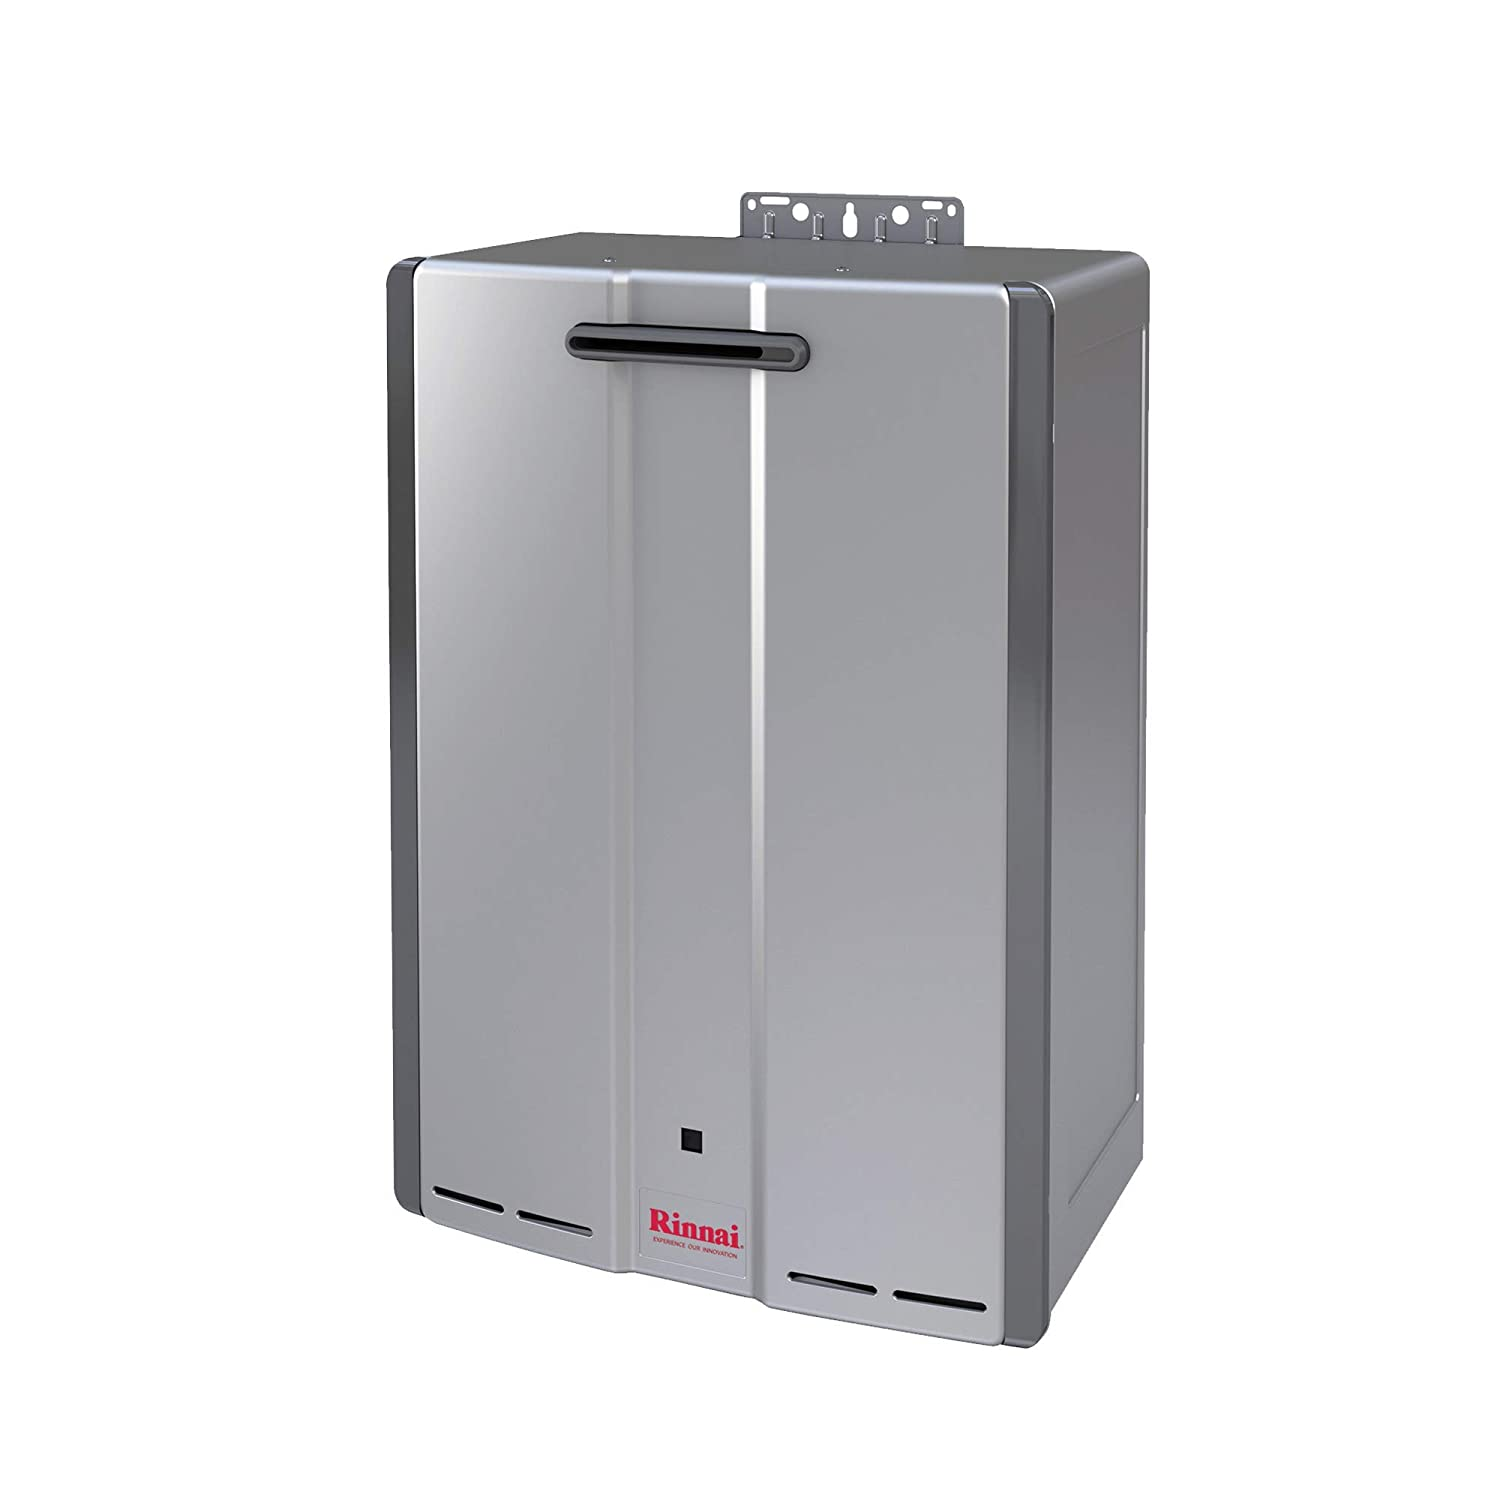 Rinnai RUR Series Sensei SE+ Tankless Hot Water Heater: Outdoor Installation